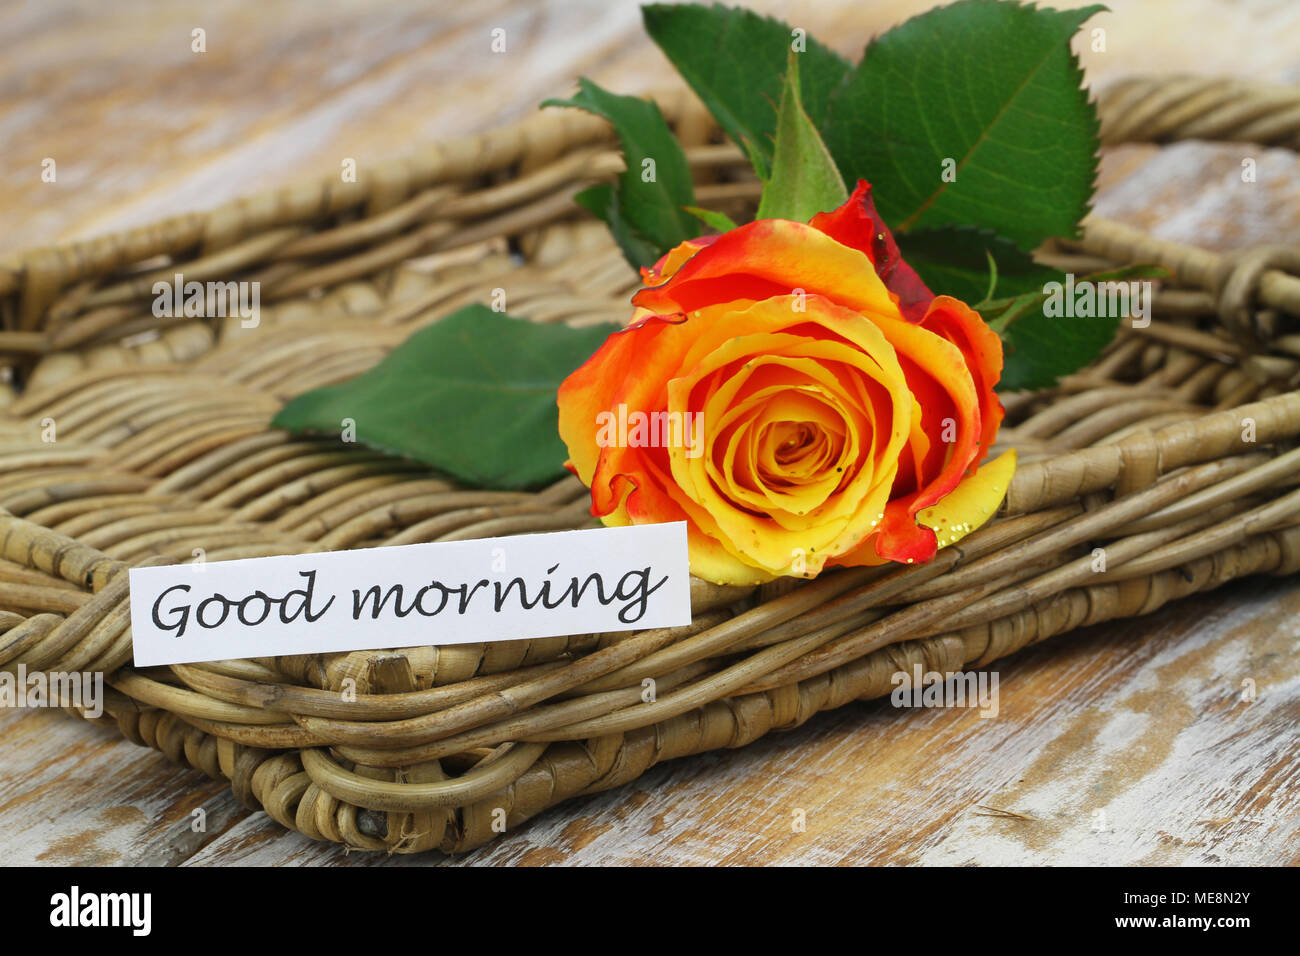 Good Morning Card With One Red And Yellow Rose Sprinkled With Glitter On Wicker Surface Stock Photo Alamy